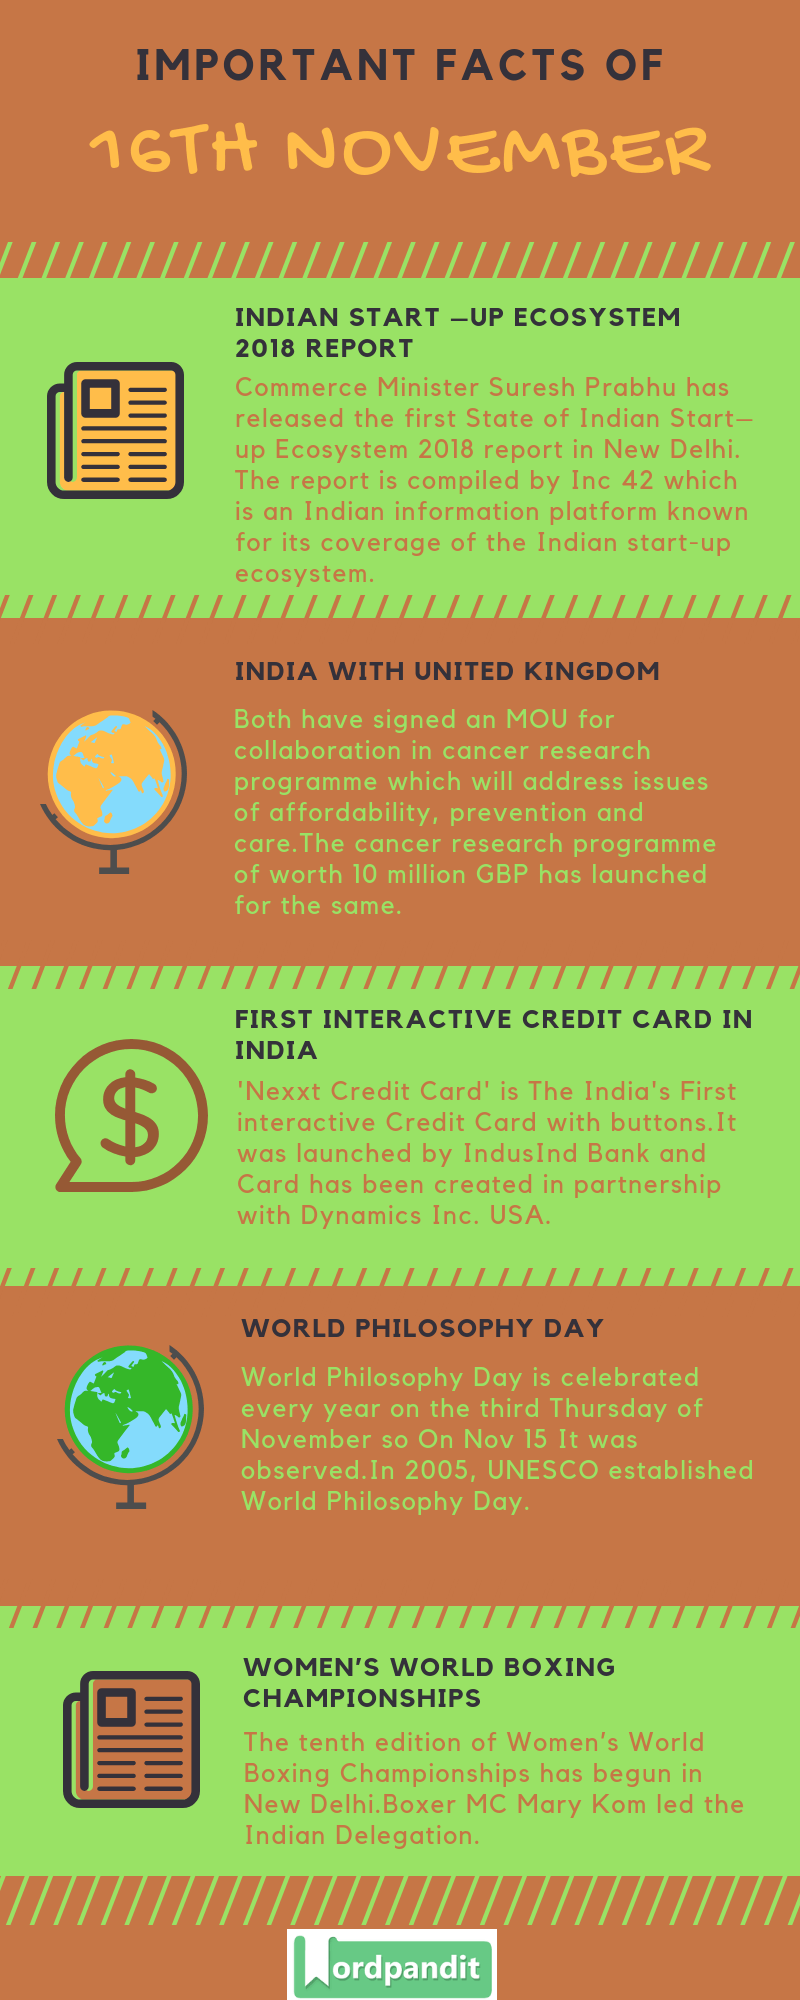 Daily Current Affairs 16 November 2018 Current Affairs Quiz 16 November 2018 Current Affairs Infographic